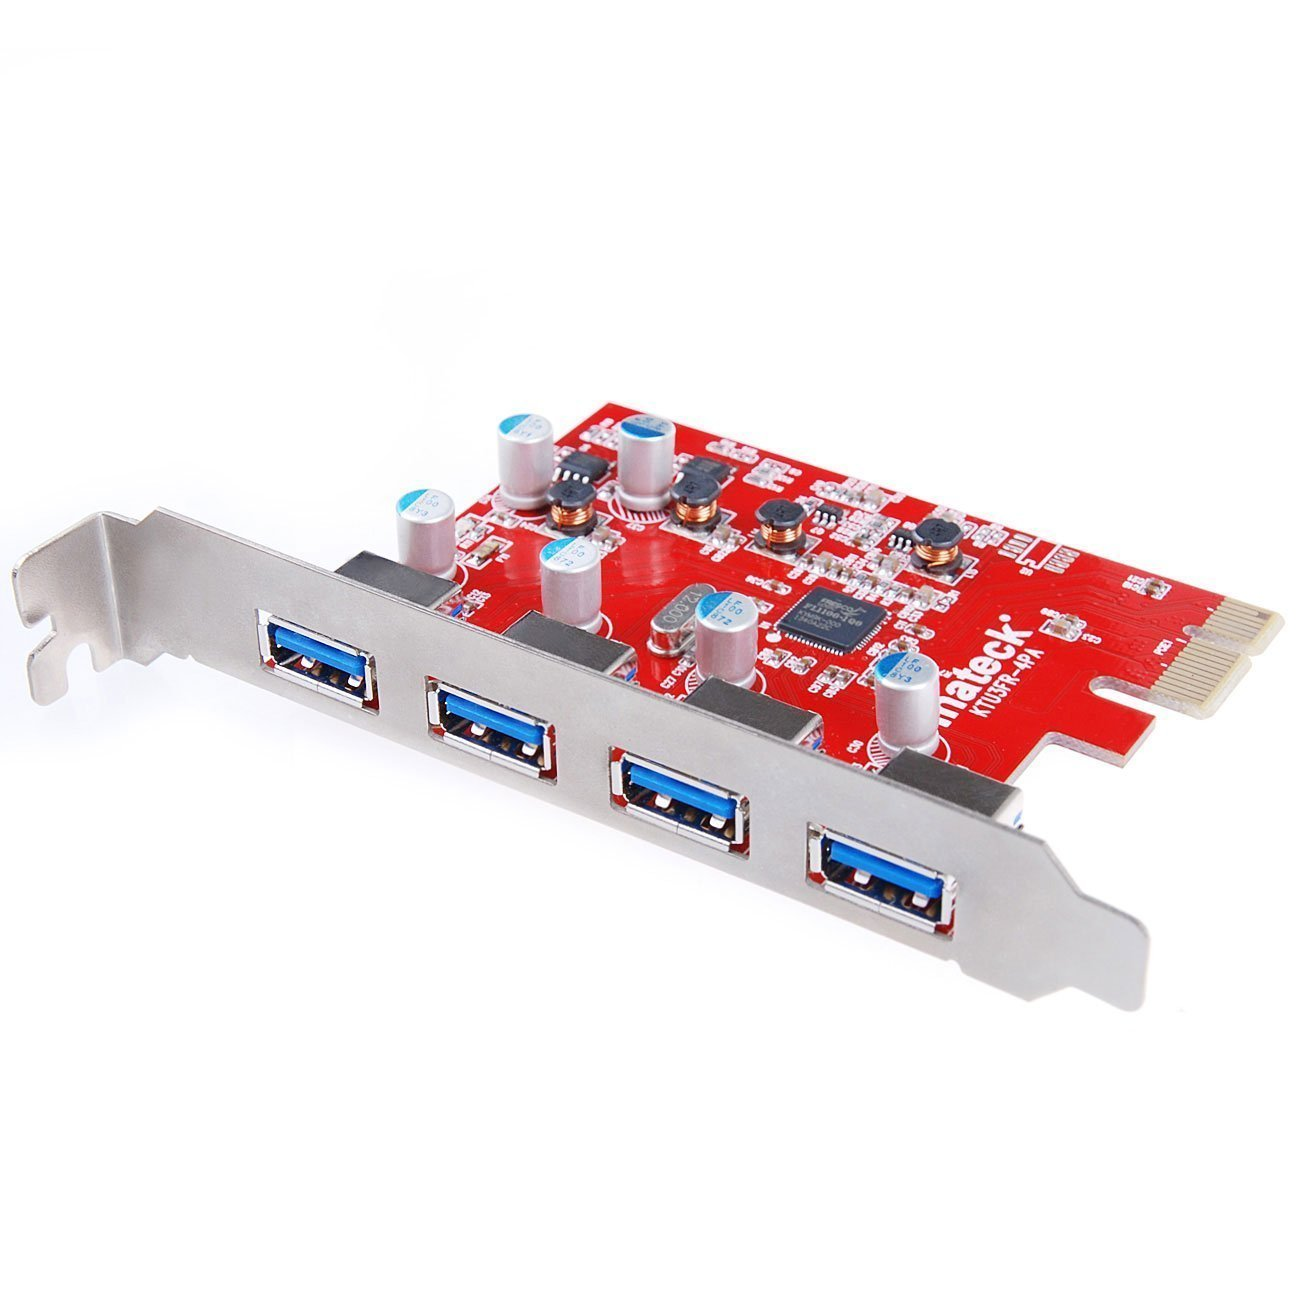 Inateck 4 Ports PCI-E to USB 3.0 Express Card Compatible Mac Pro (Early 2008 to 2012 Late Version) KT4004 by Inateck